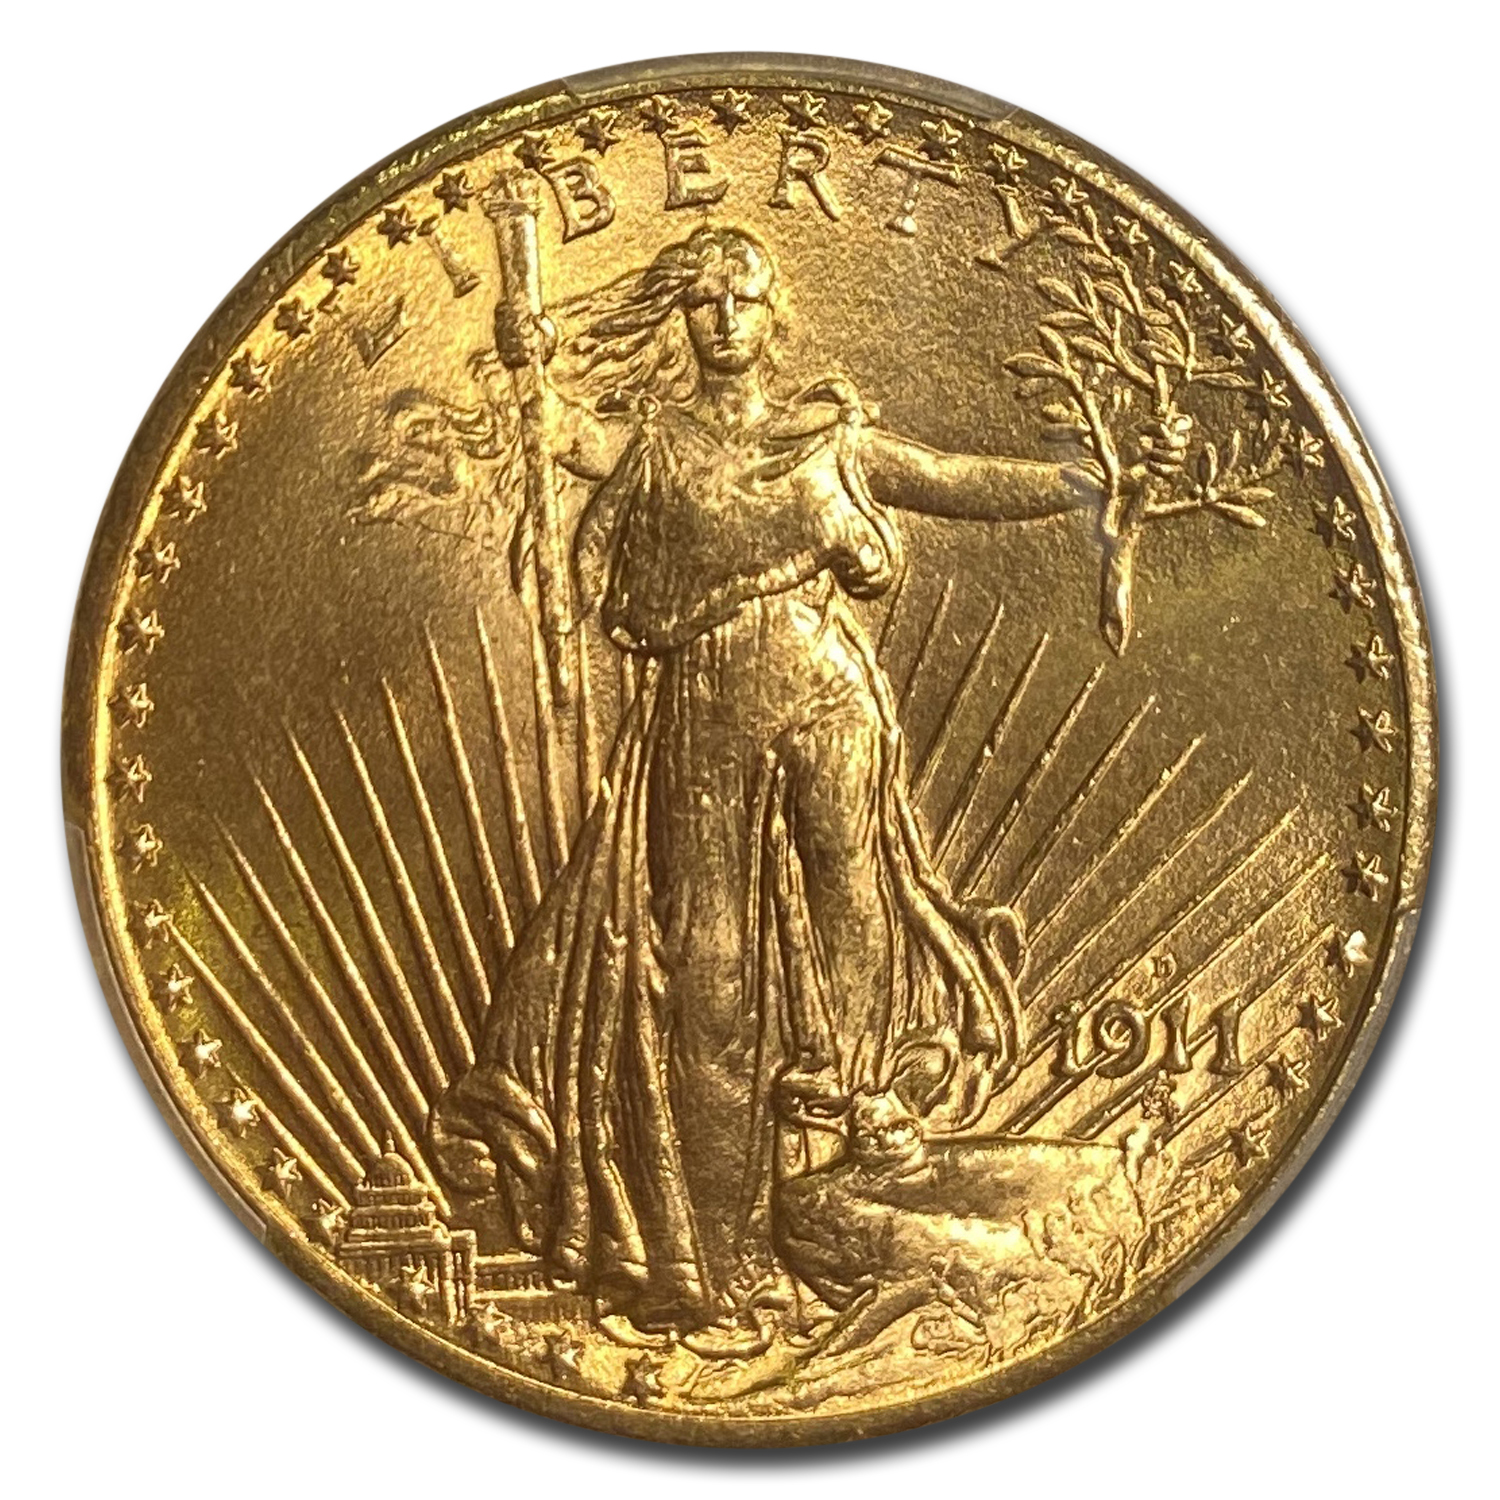 1911-D $20 St. Gaudens Gold Double Eagle - MS-66 PCGS